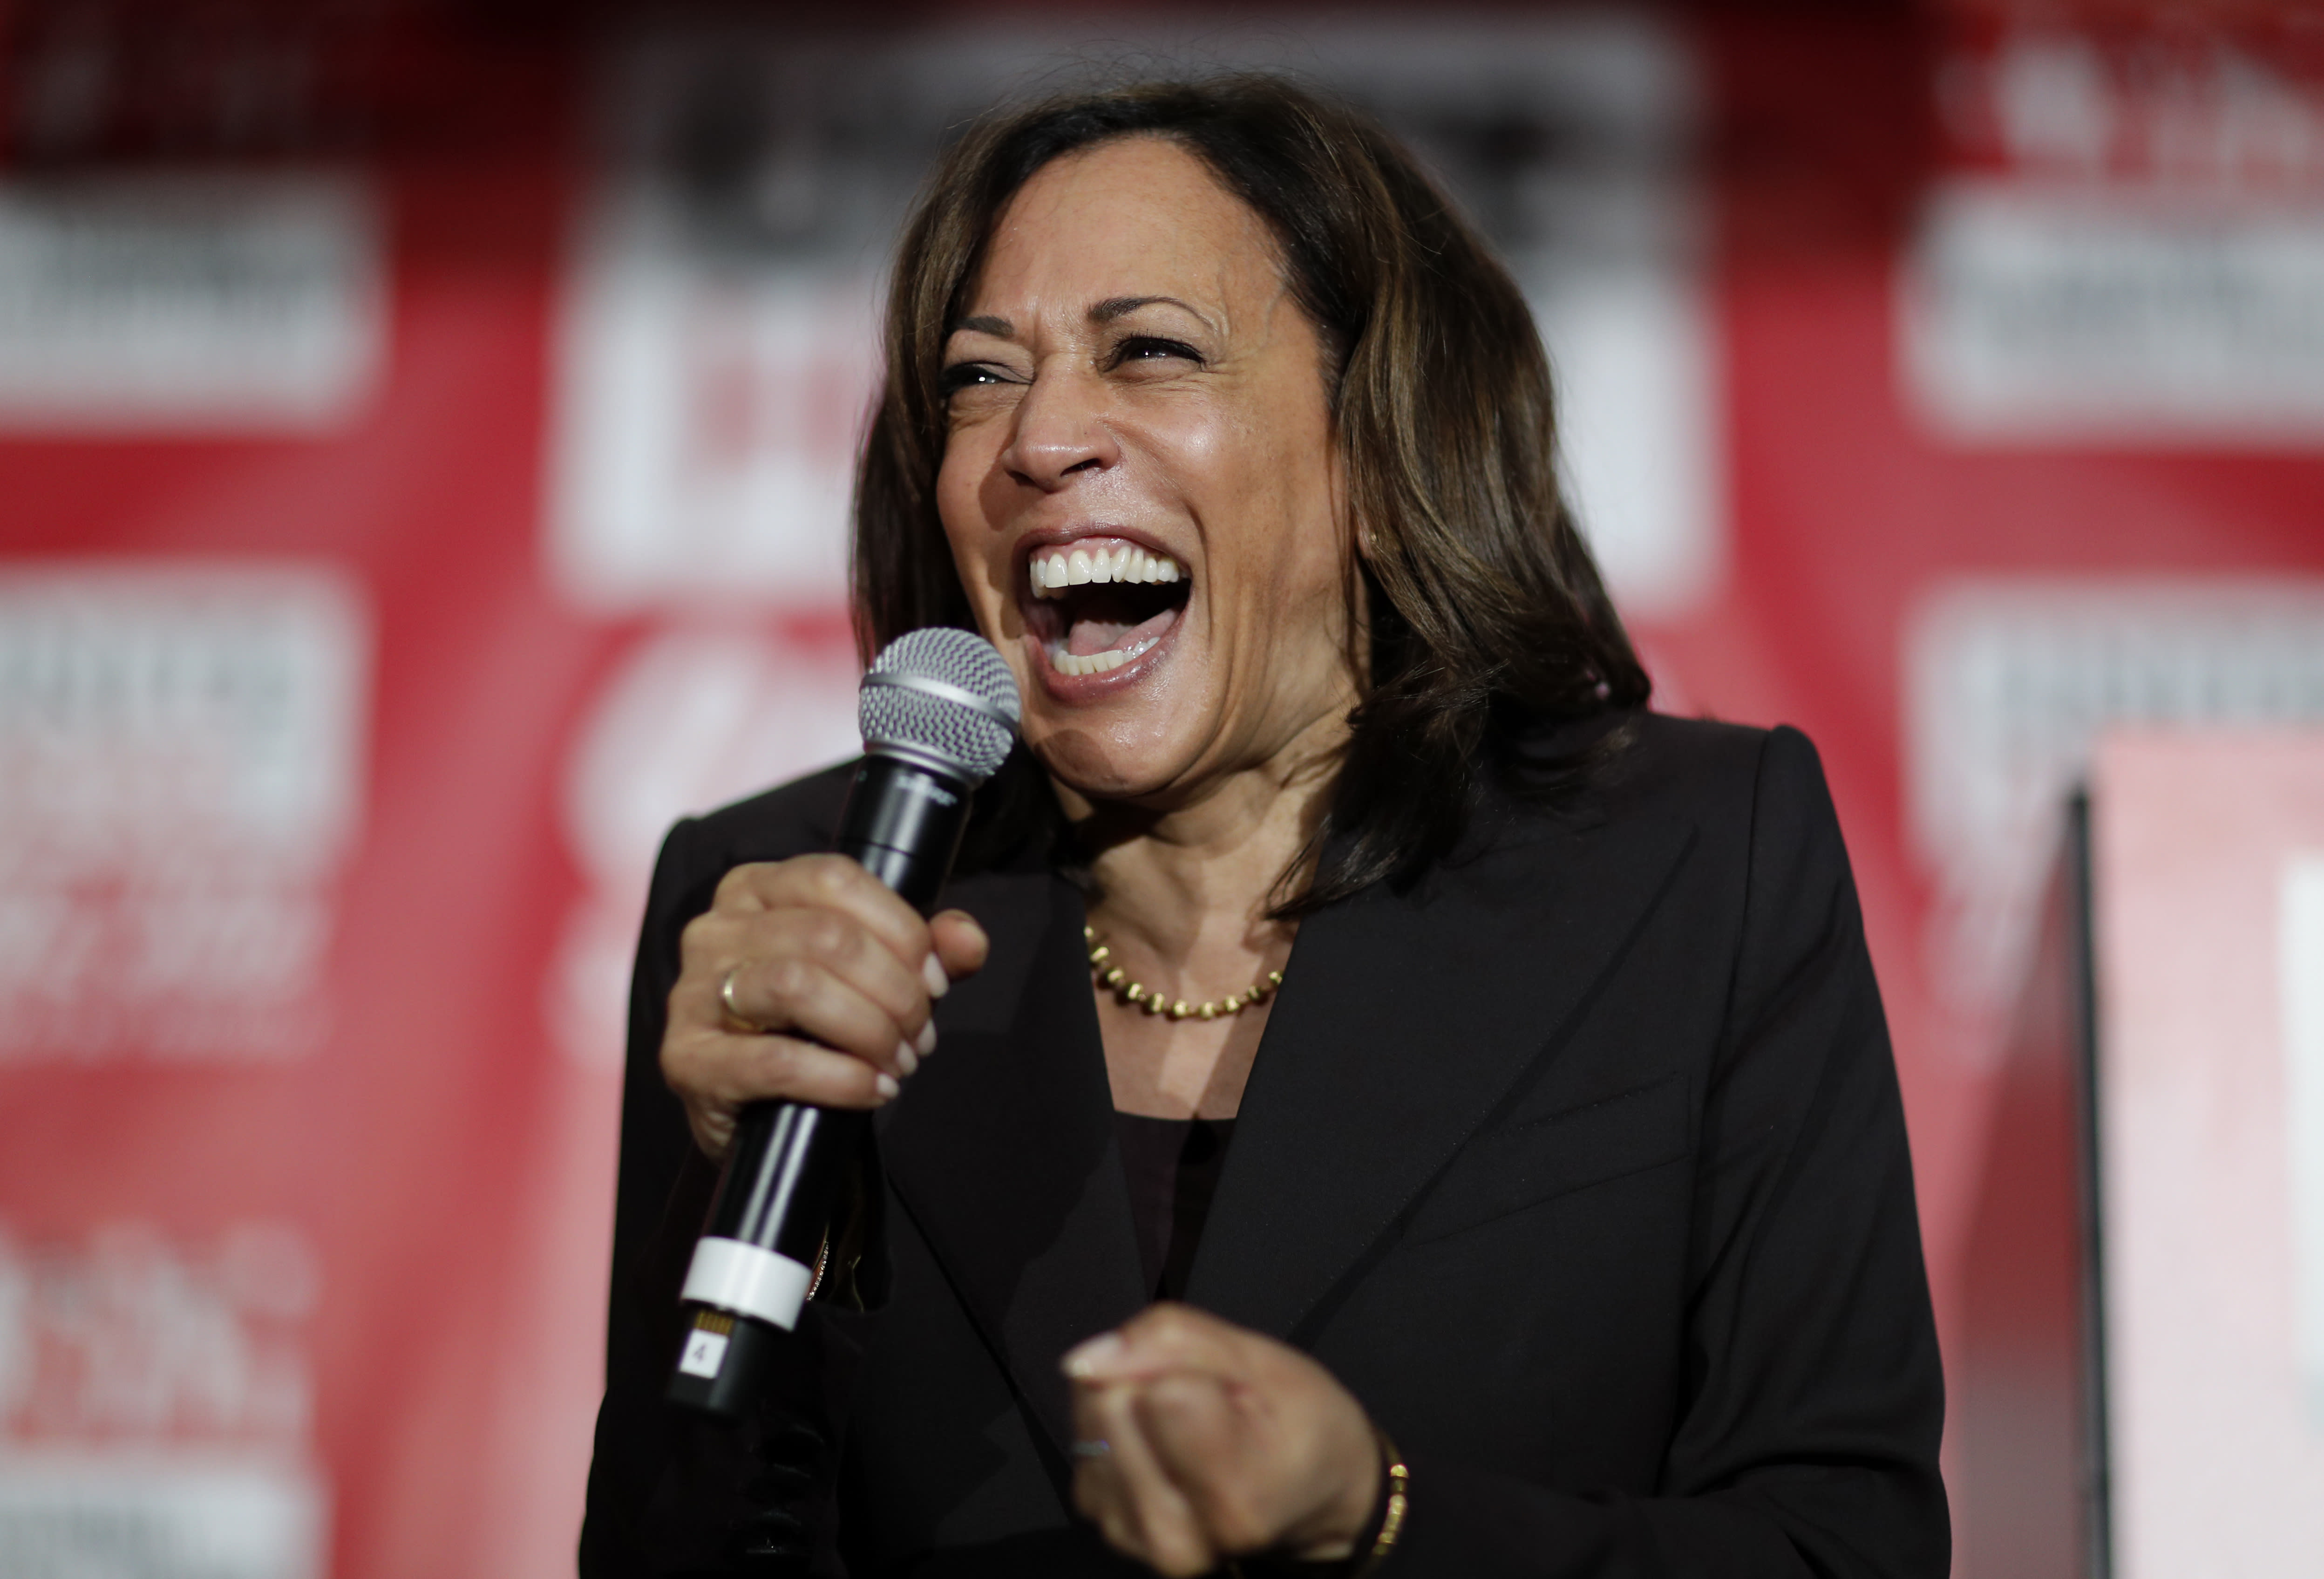 FILE - In this Nov. 8, 2019, file photo, then-Democratic presidential candidate Sen. Kamala Harris, D-Calif., reacts as she speaks at a town hall event at the Culinary Workers Union in Las Vegas. (AP Photo/John Locher, File)